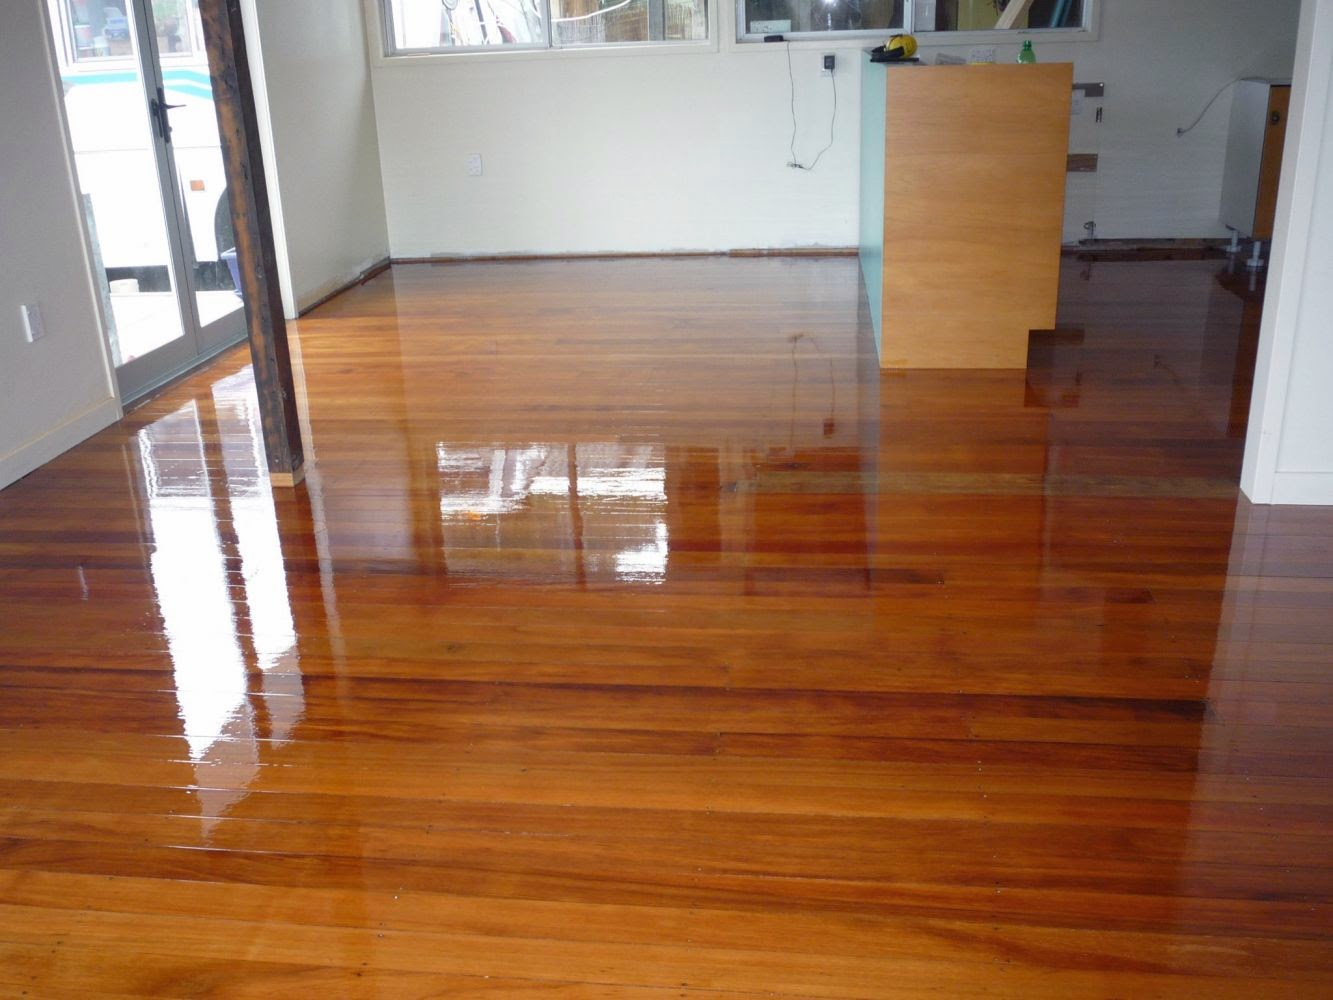 System floor sanding doing it yourself may end up being expensive or may damage the grounds hence it is highly recommendable that you hire a professional to do it for you solutioingenieria Choice Image